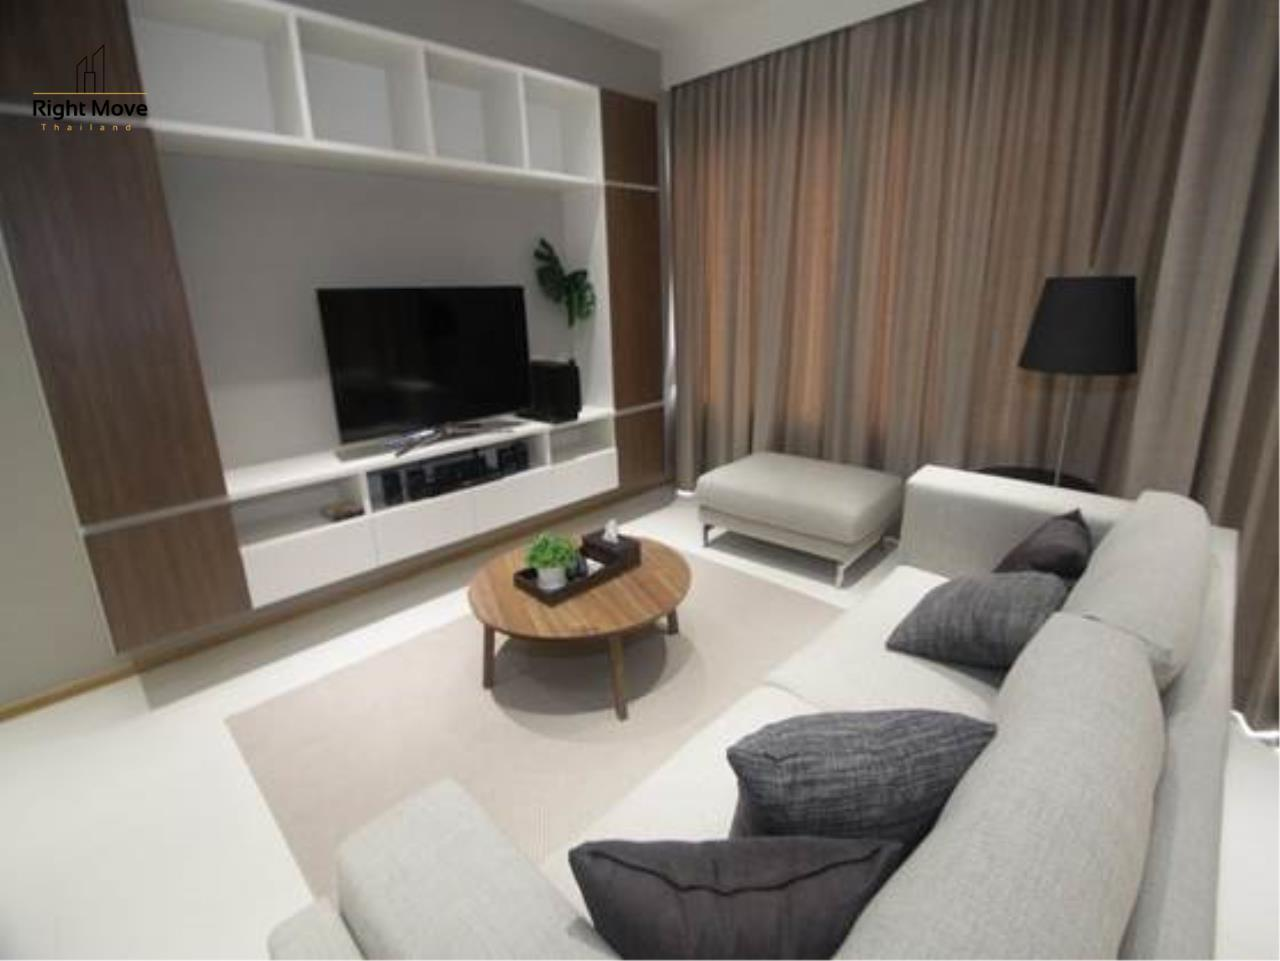 Right Move Thailand Agency's CA6243 The Emporio Place for rent - 75,000THB - 2 Bedrooms - 102 sqm. 13